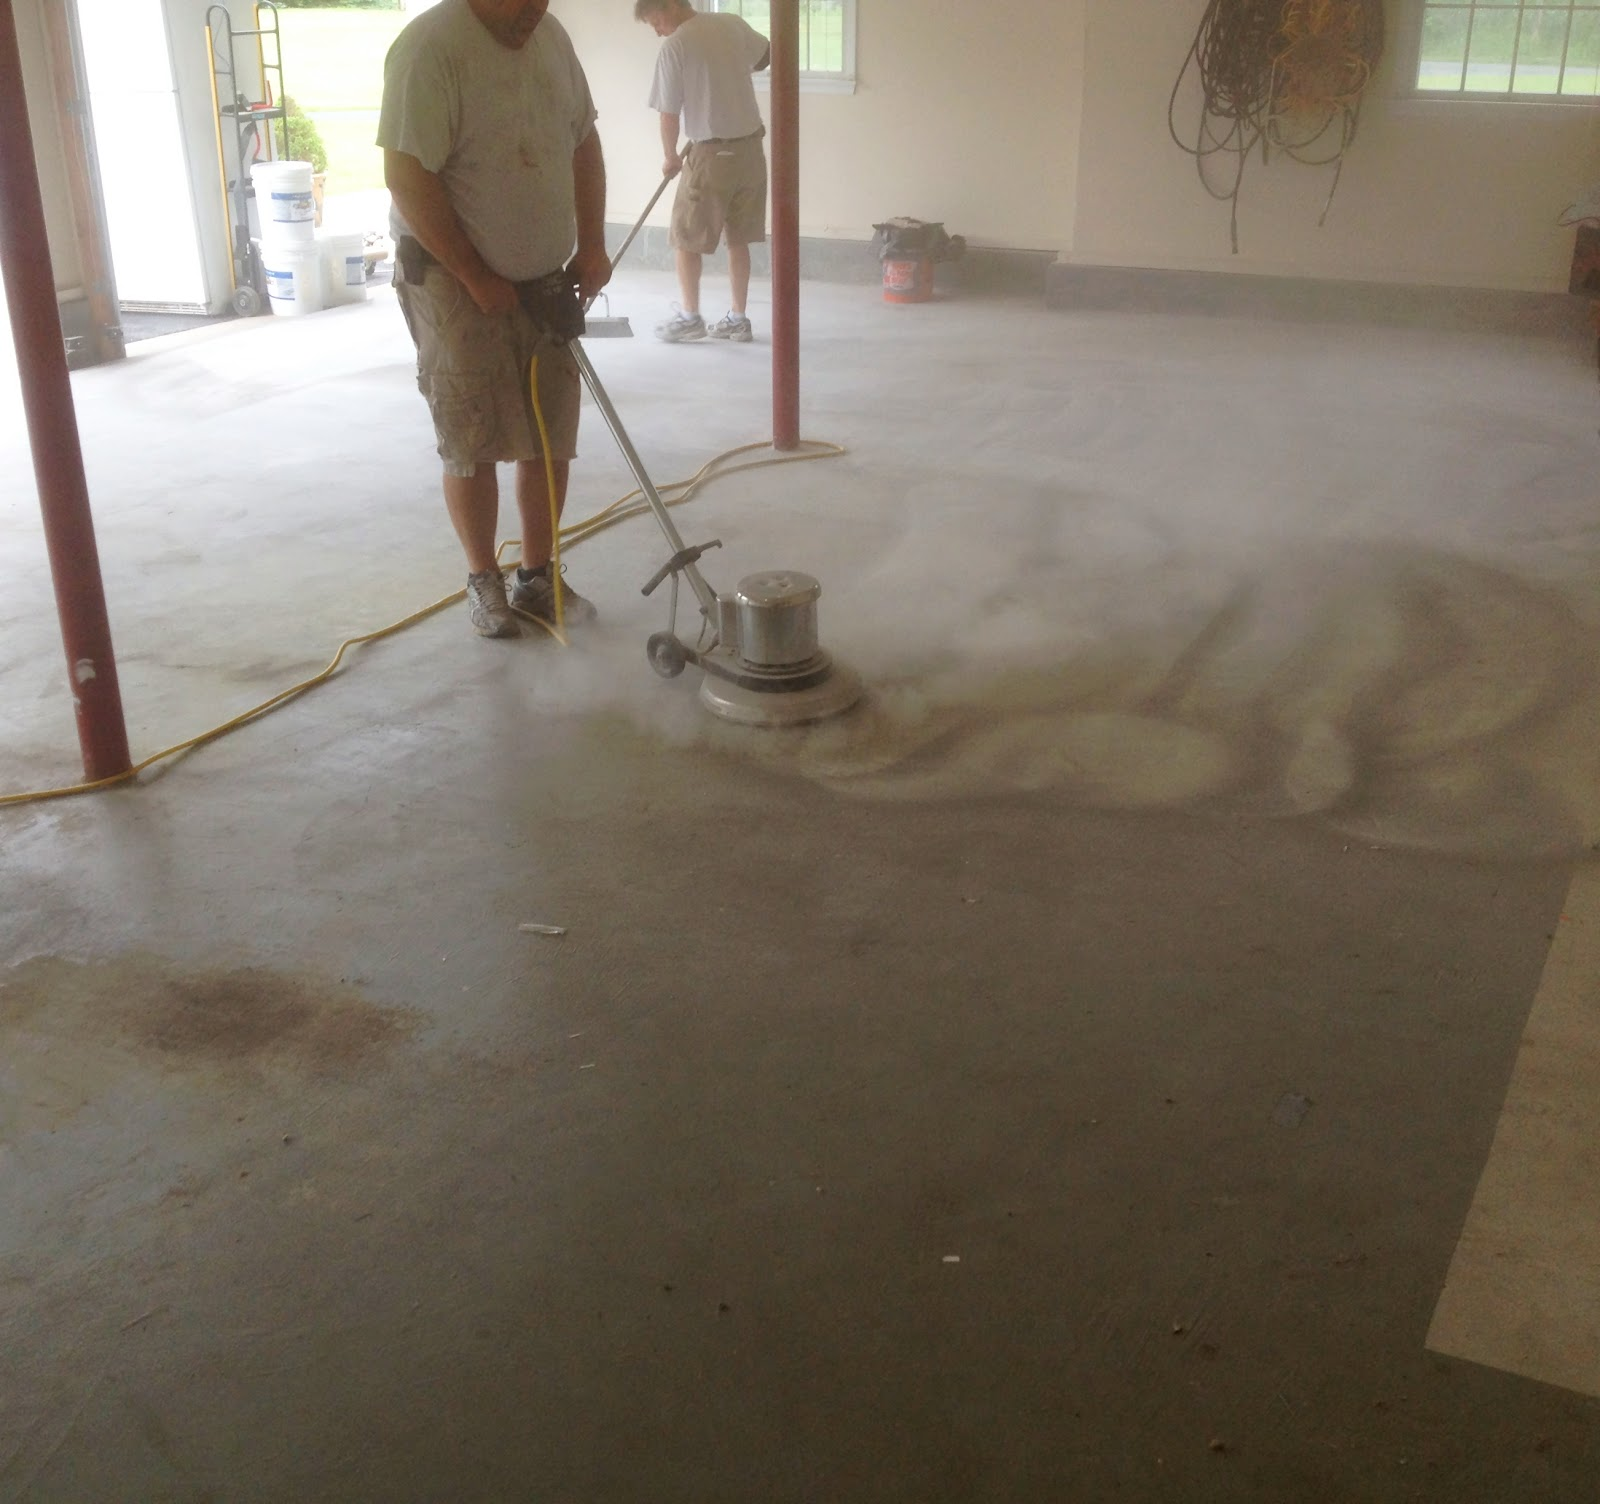 patio floor awesome of cement ideas luxury search concrete paint pinterest furniture epoxy beautiful flooring google full sealer garage charming size designs